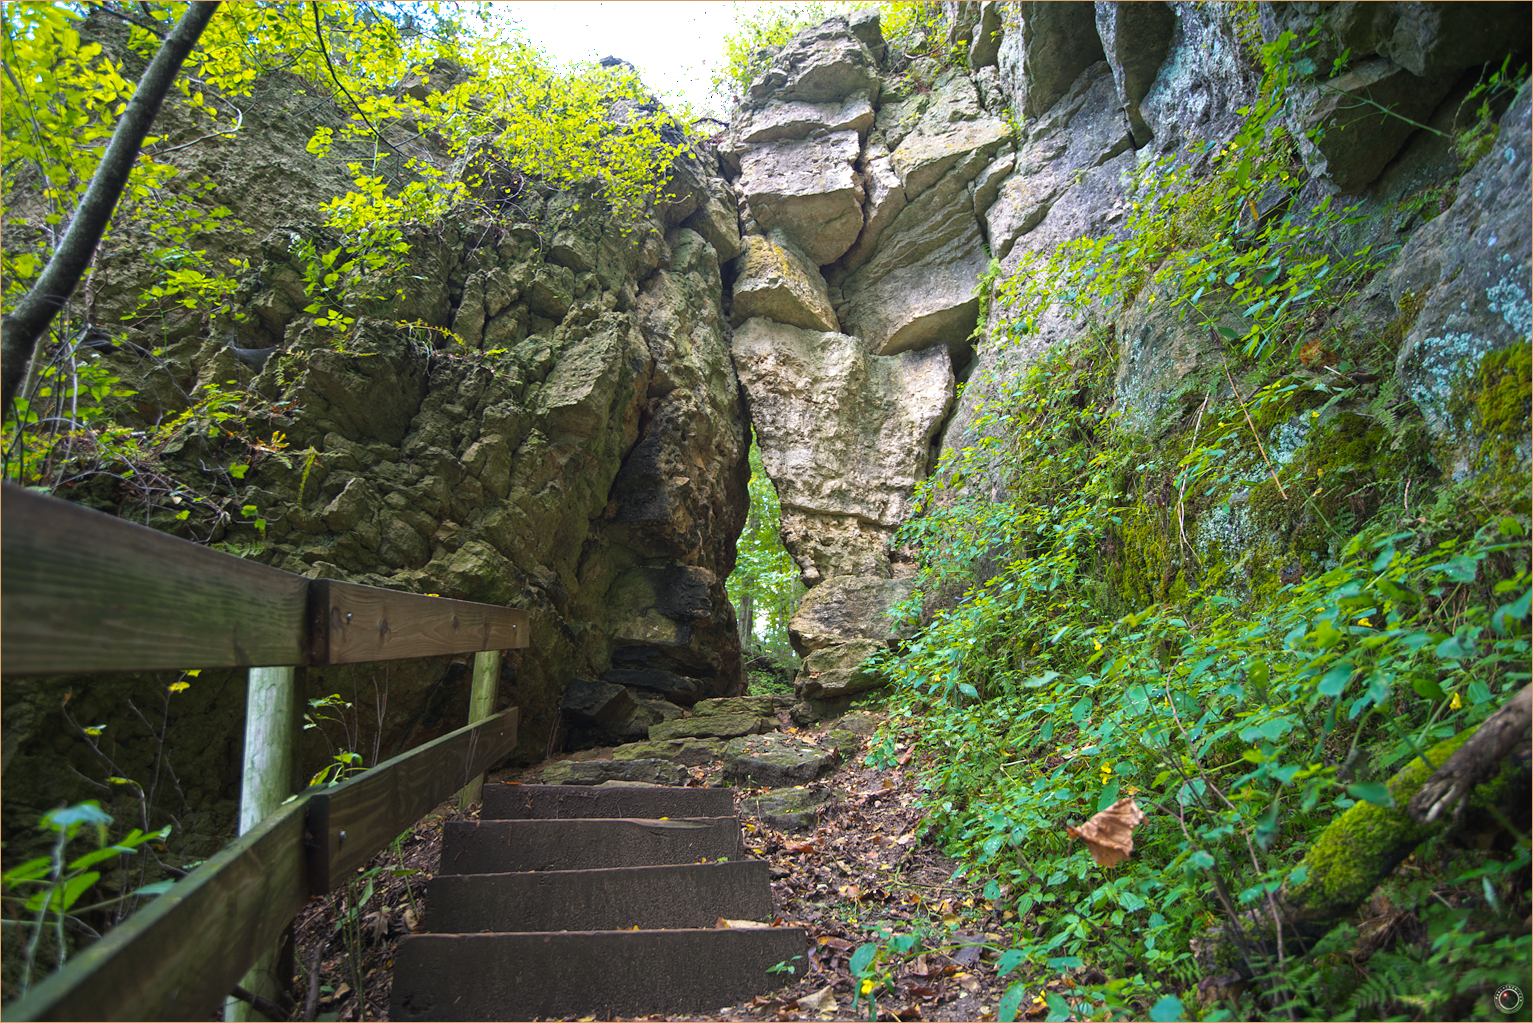 66 Wyalusing State Park Wisconsin The Keyhole